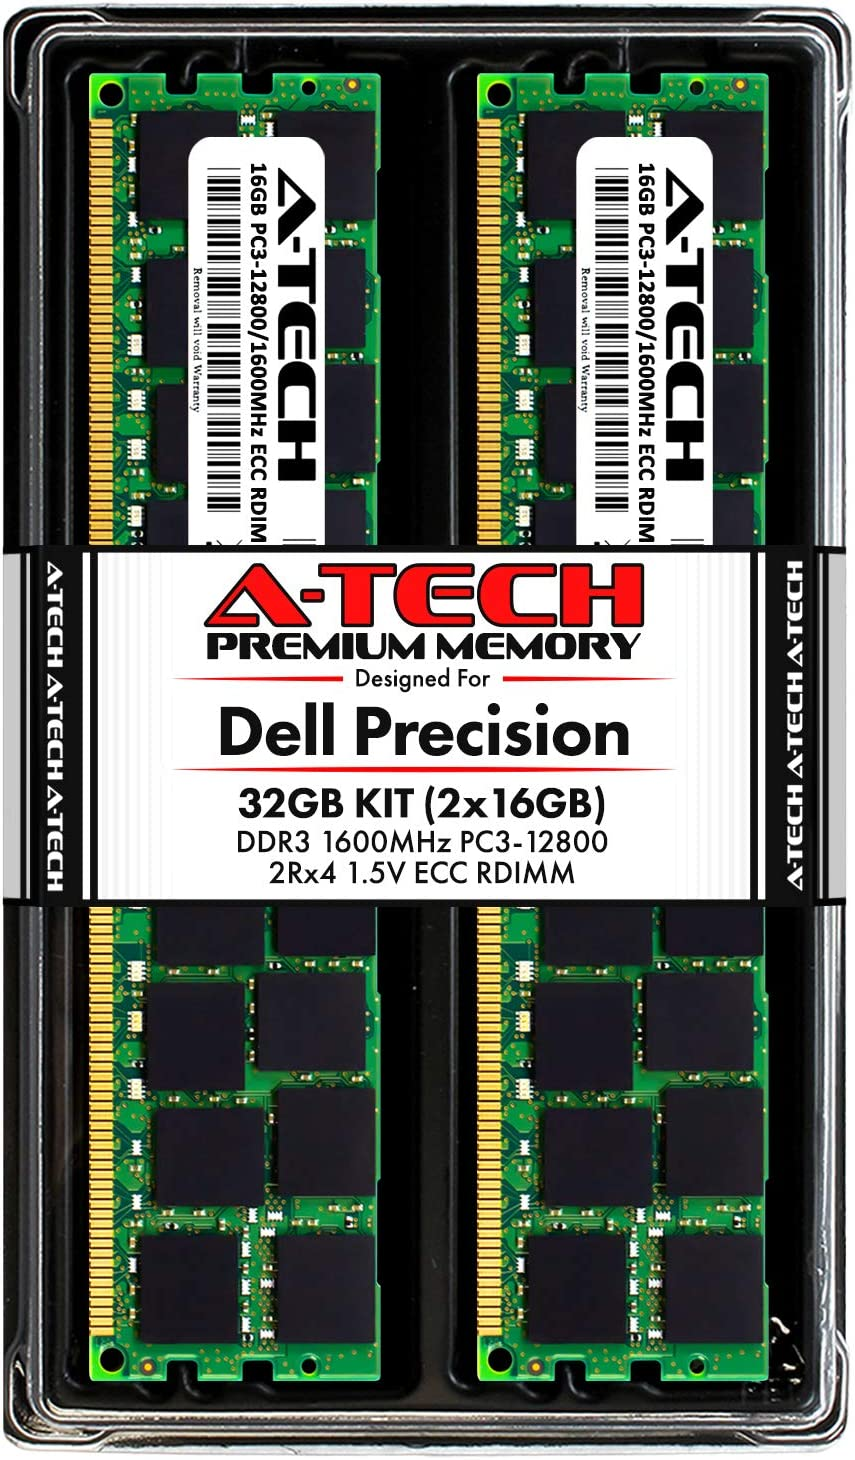 A-Tech 32GB ECC RDIMM Memory Kit for Dell Precision T7600, T5600, T3610, T3600 Workstations | (2 x 16GB) DDR3 1600Mhz PC3-12800 2Rx4 1.5V 240-pin Dual Rank ECC Registered DIMM RAM Upgrade